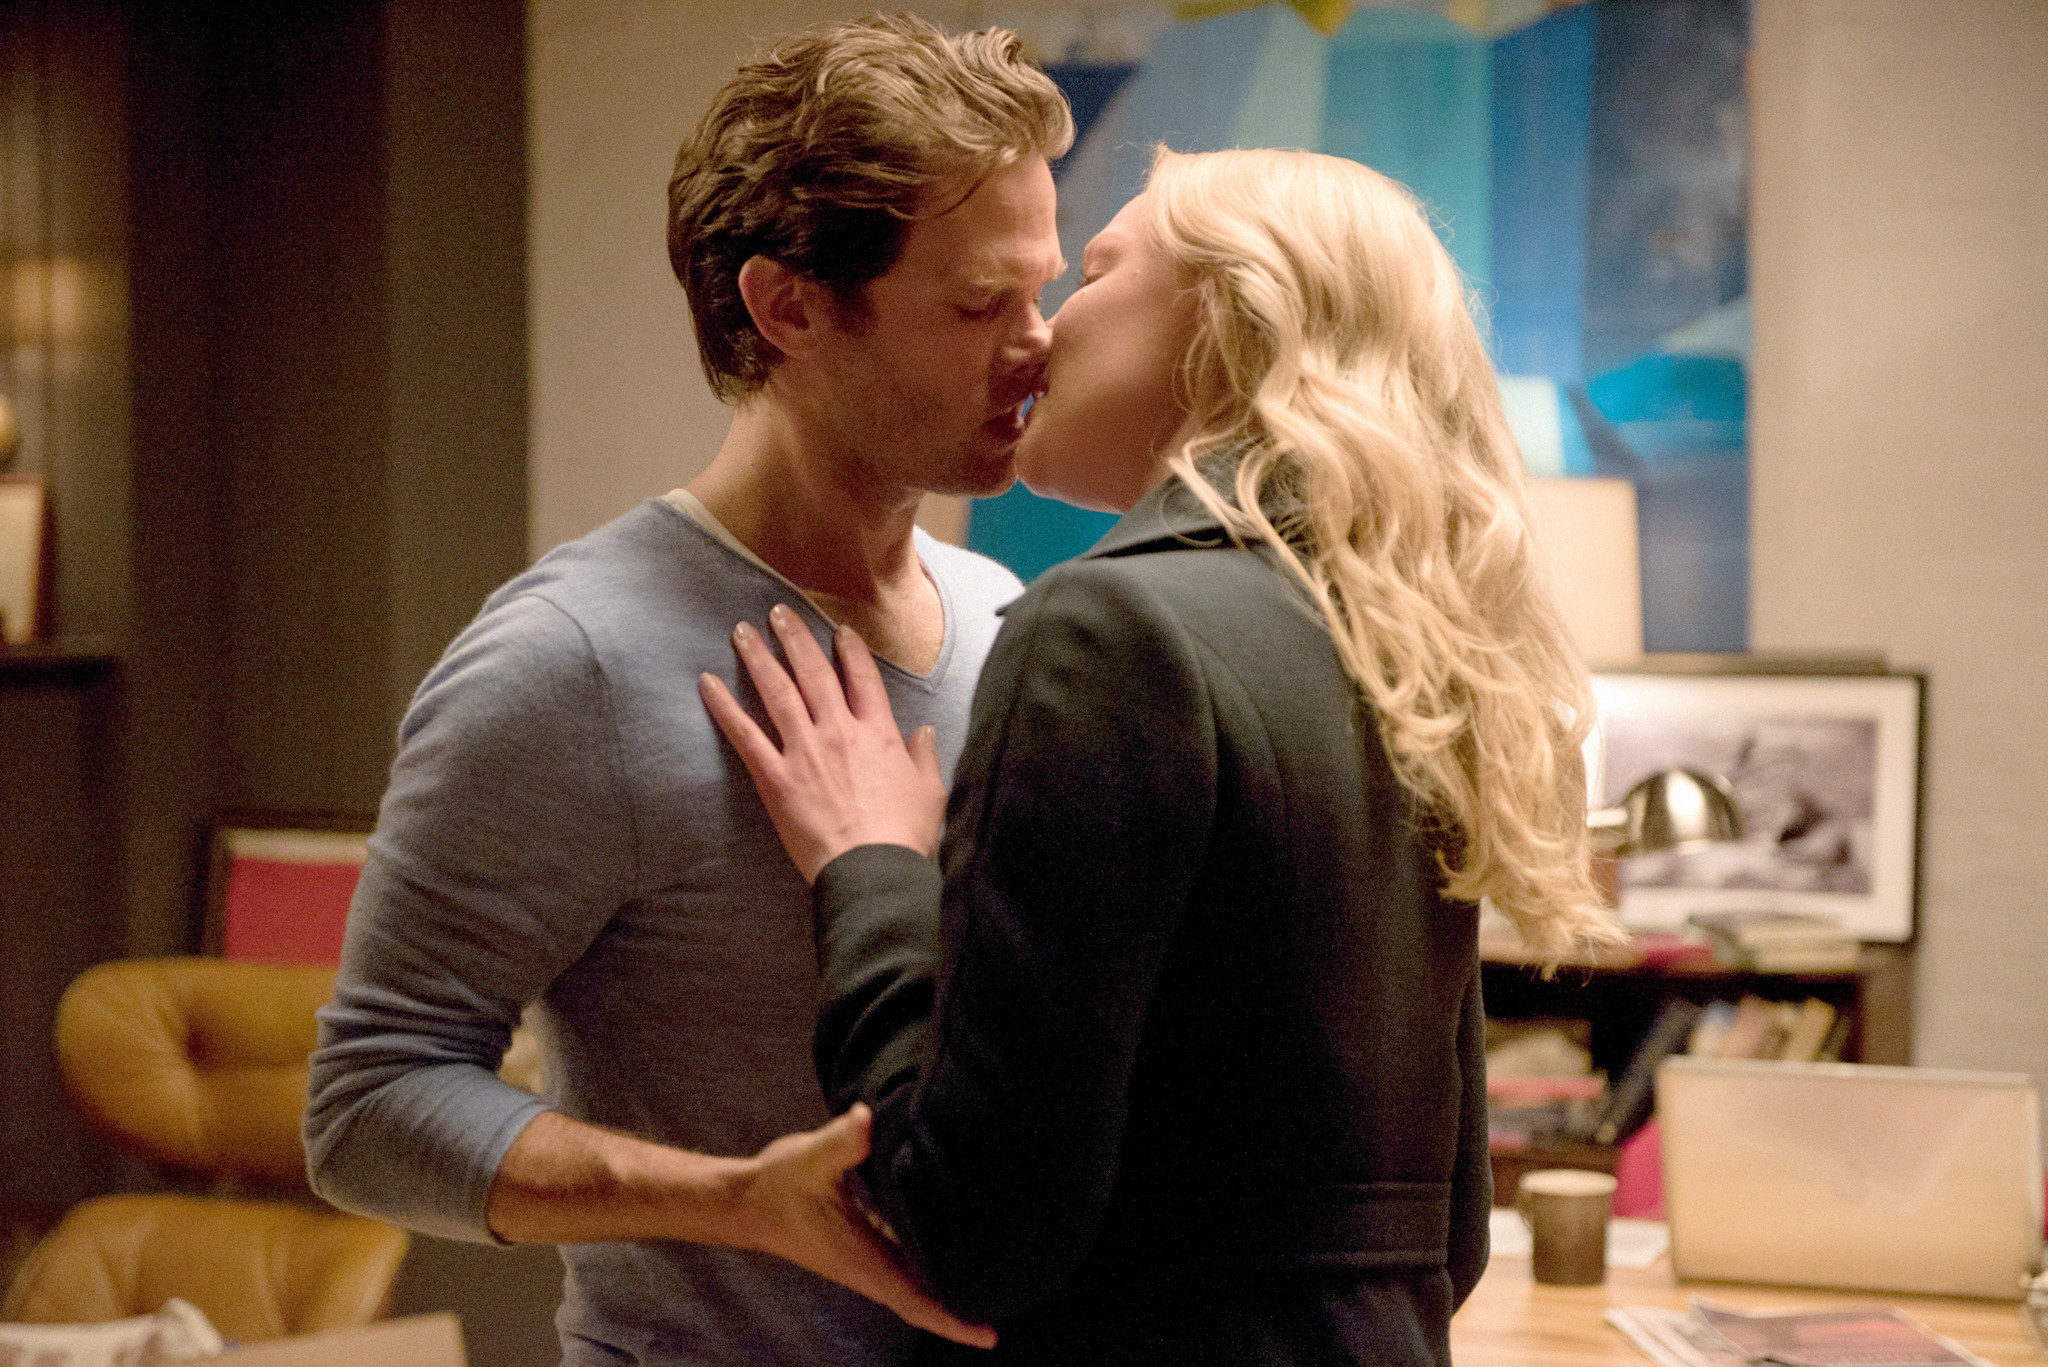 Doubt Is The Perfect Tv Show For Katherine Heigl Because Its Totally Fine But Passionless Chicago Tribune